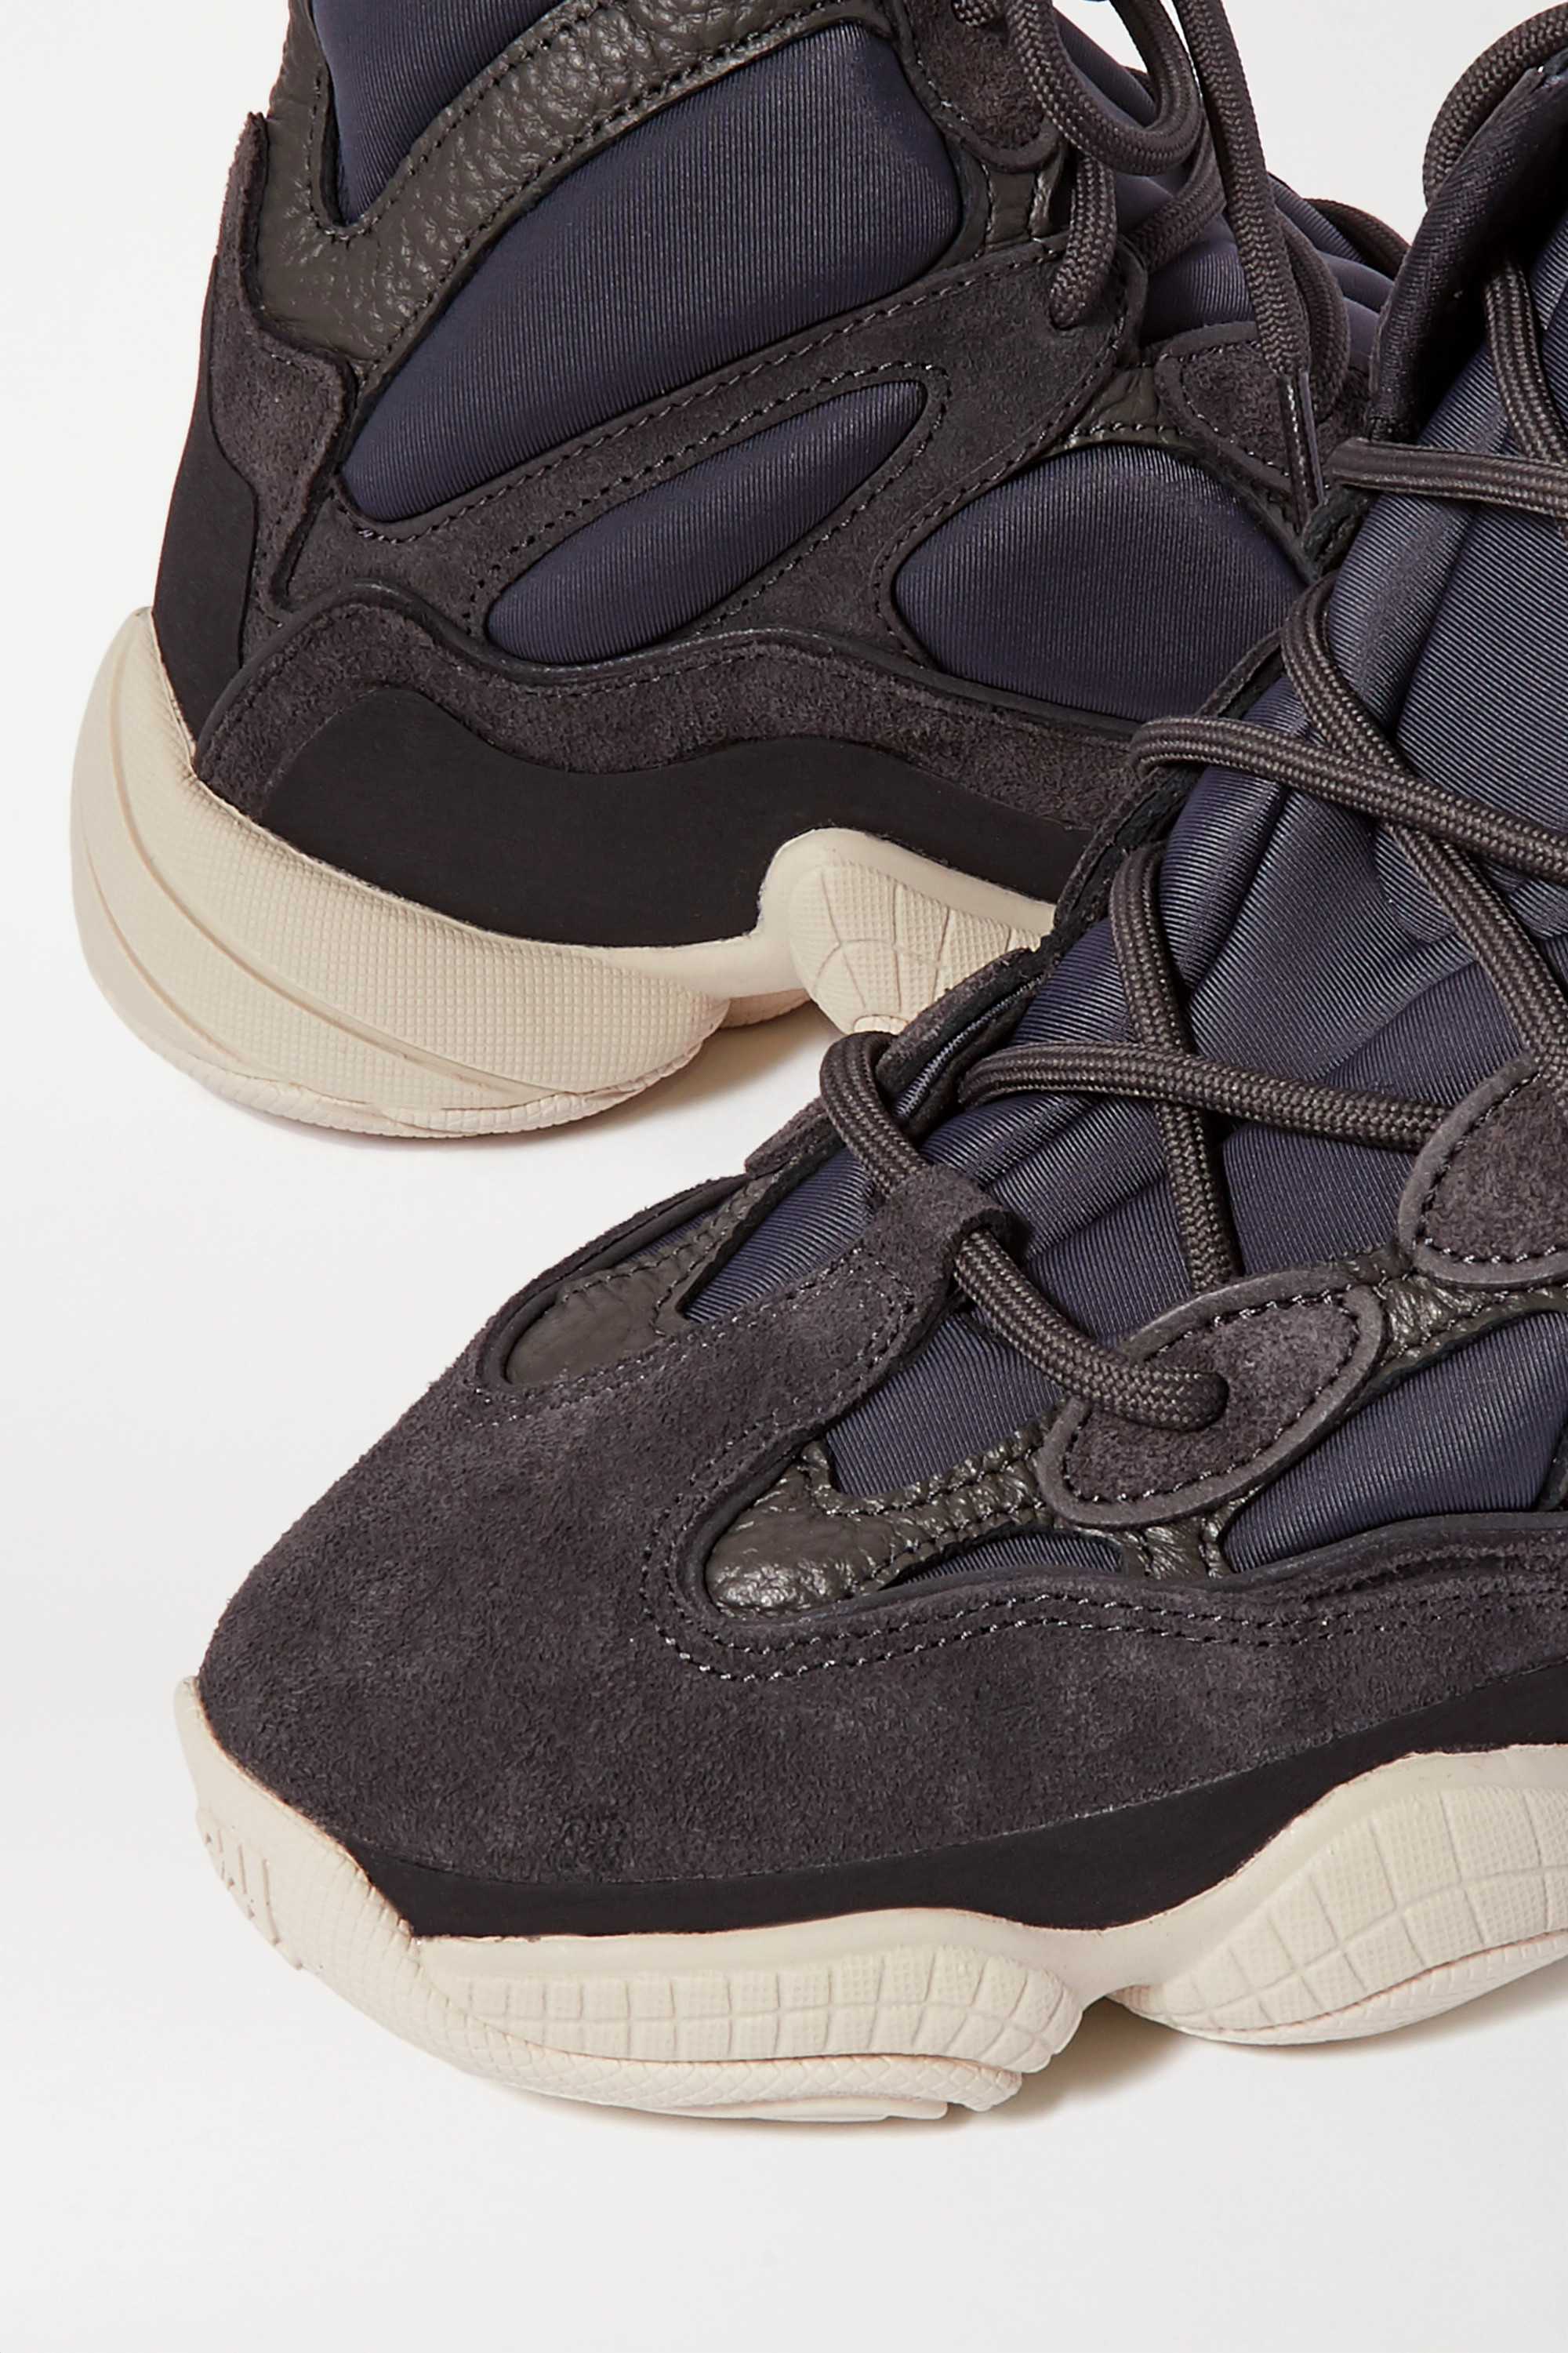 Yeezy 500 High suede, textured-leather